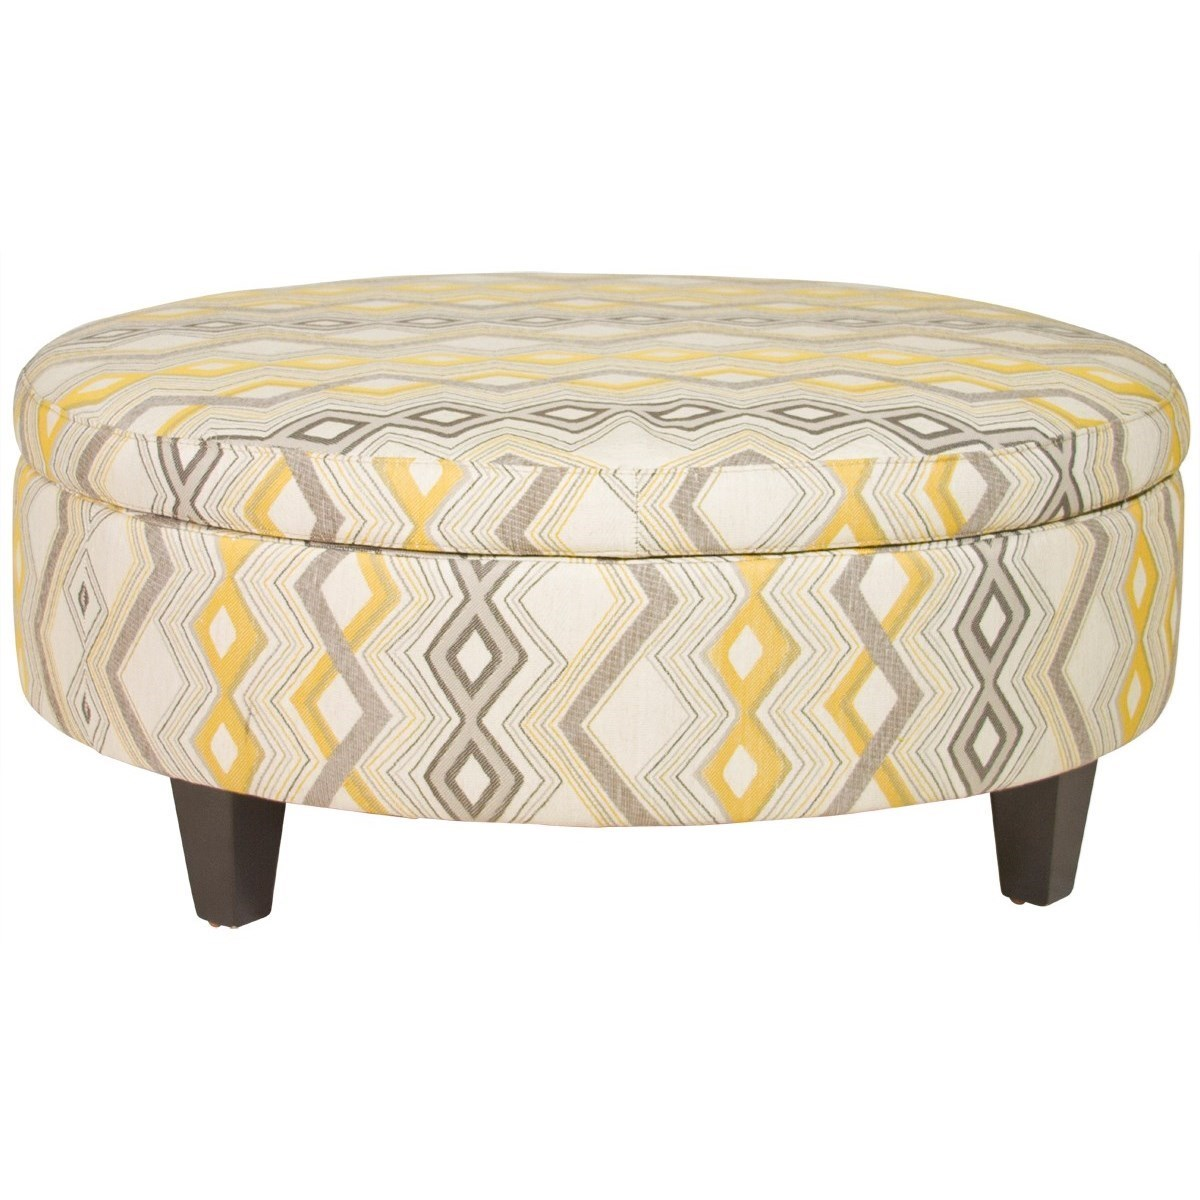 Jonathan Louis OttomansLarge Round Storage Ottoman ...